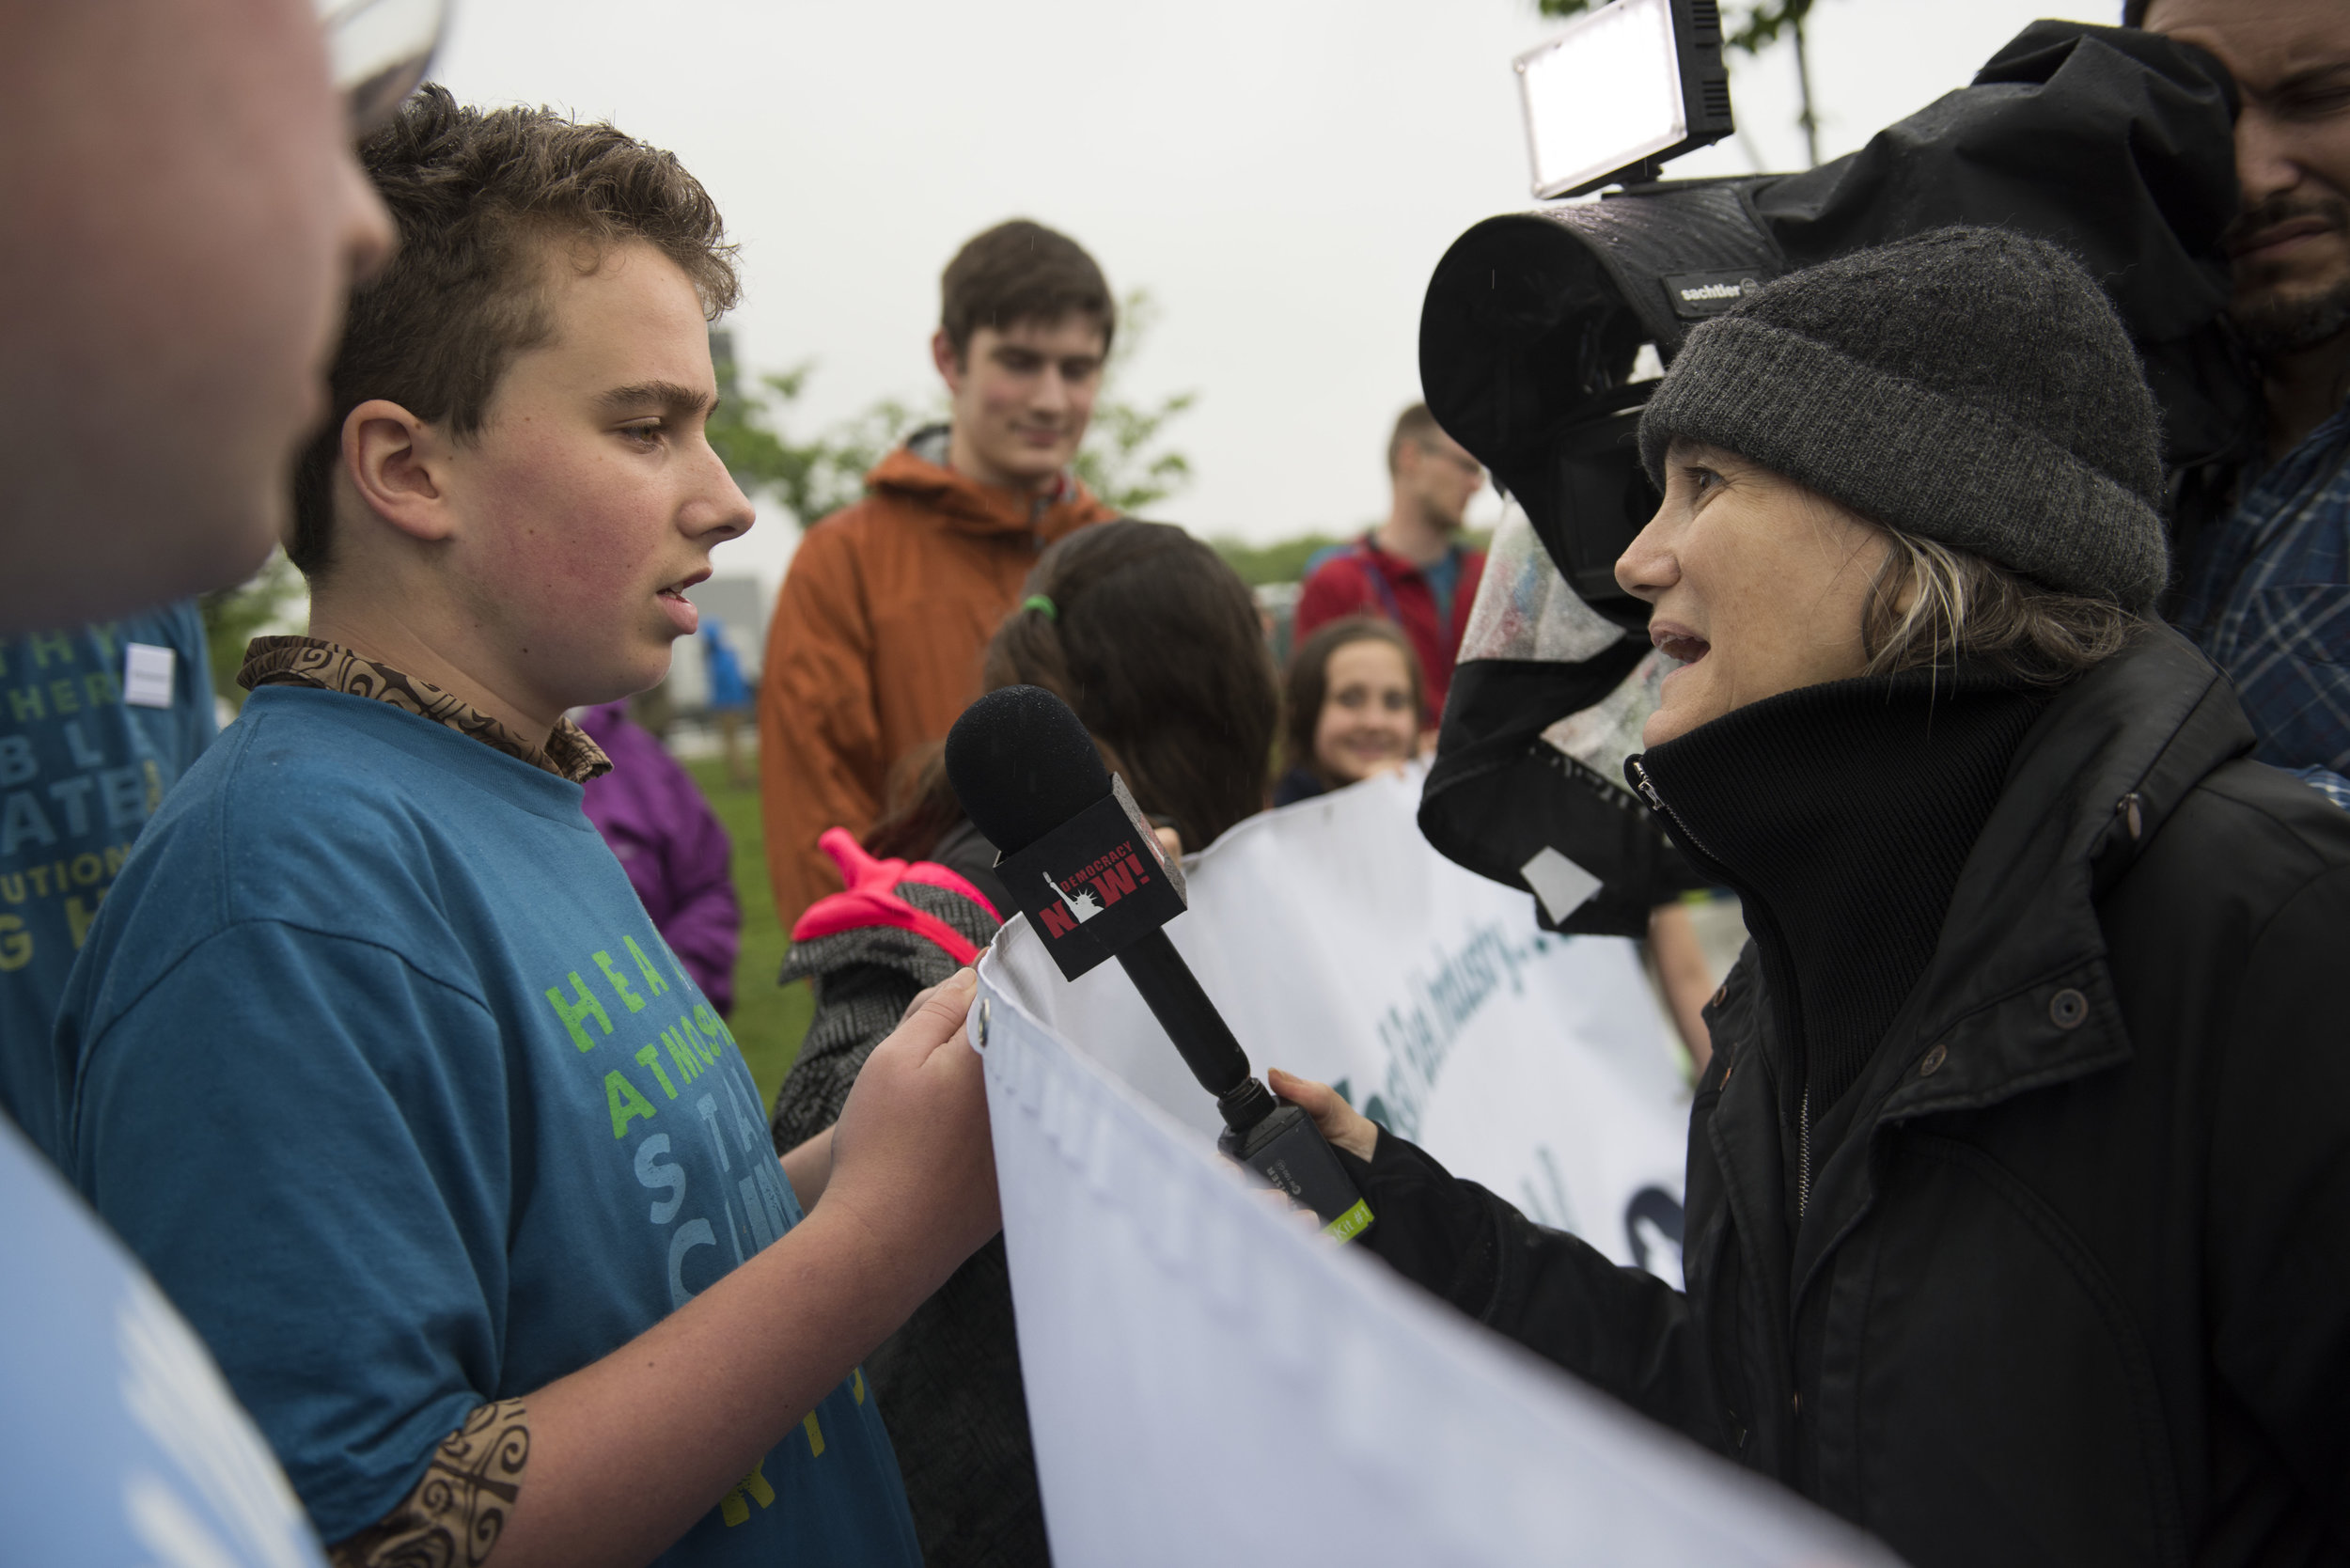 Nick being interviewed by Amy Goodman of Democracy Now! at the March For Science in Washington DC, April 22, 2017. Photo: Robin Loznak